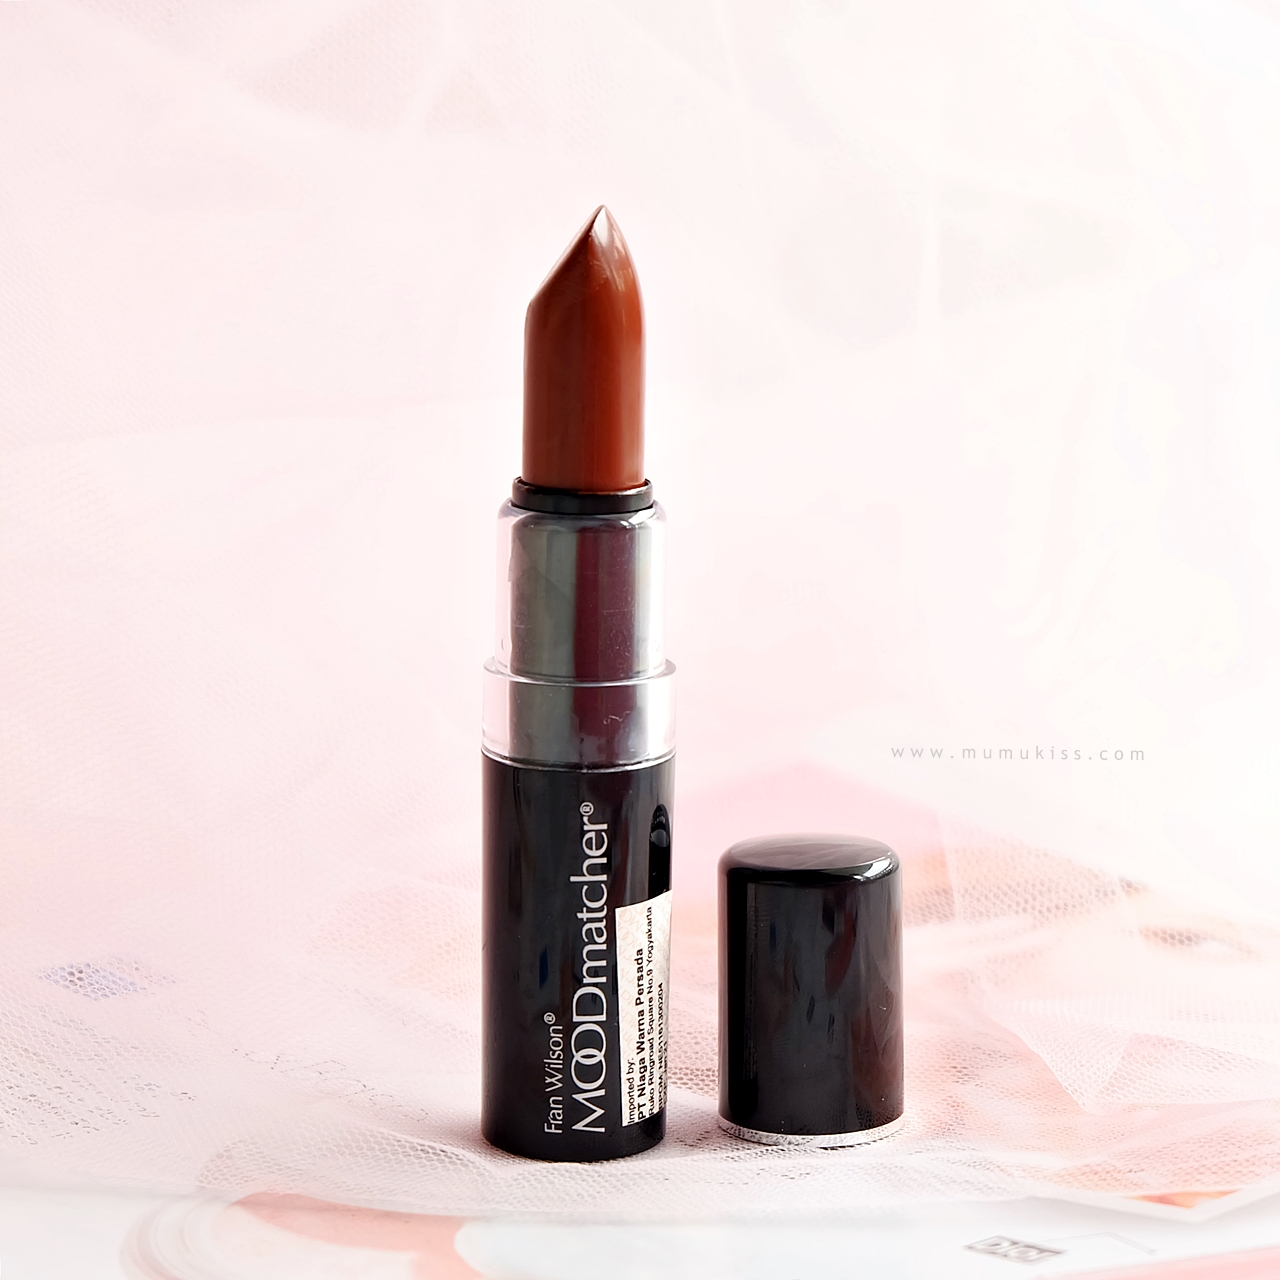 Review Moodmatcher Lipsticks In Dark Blue And Brown Sponsored Orange Turns Into Beautiful Brick Red But It Takes 2 3 Hours Before The Color Completely Changes Payoff Is Very Strong Beautifully Pigmented